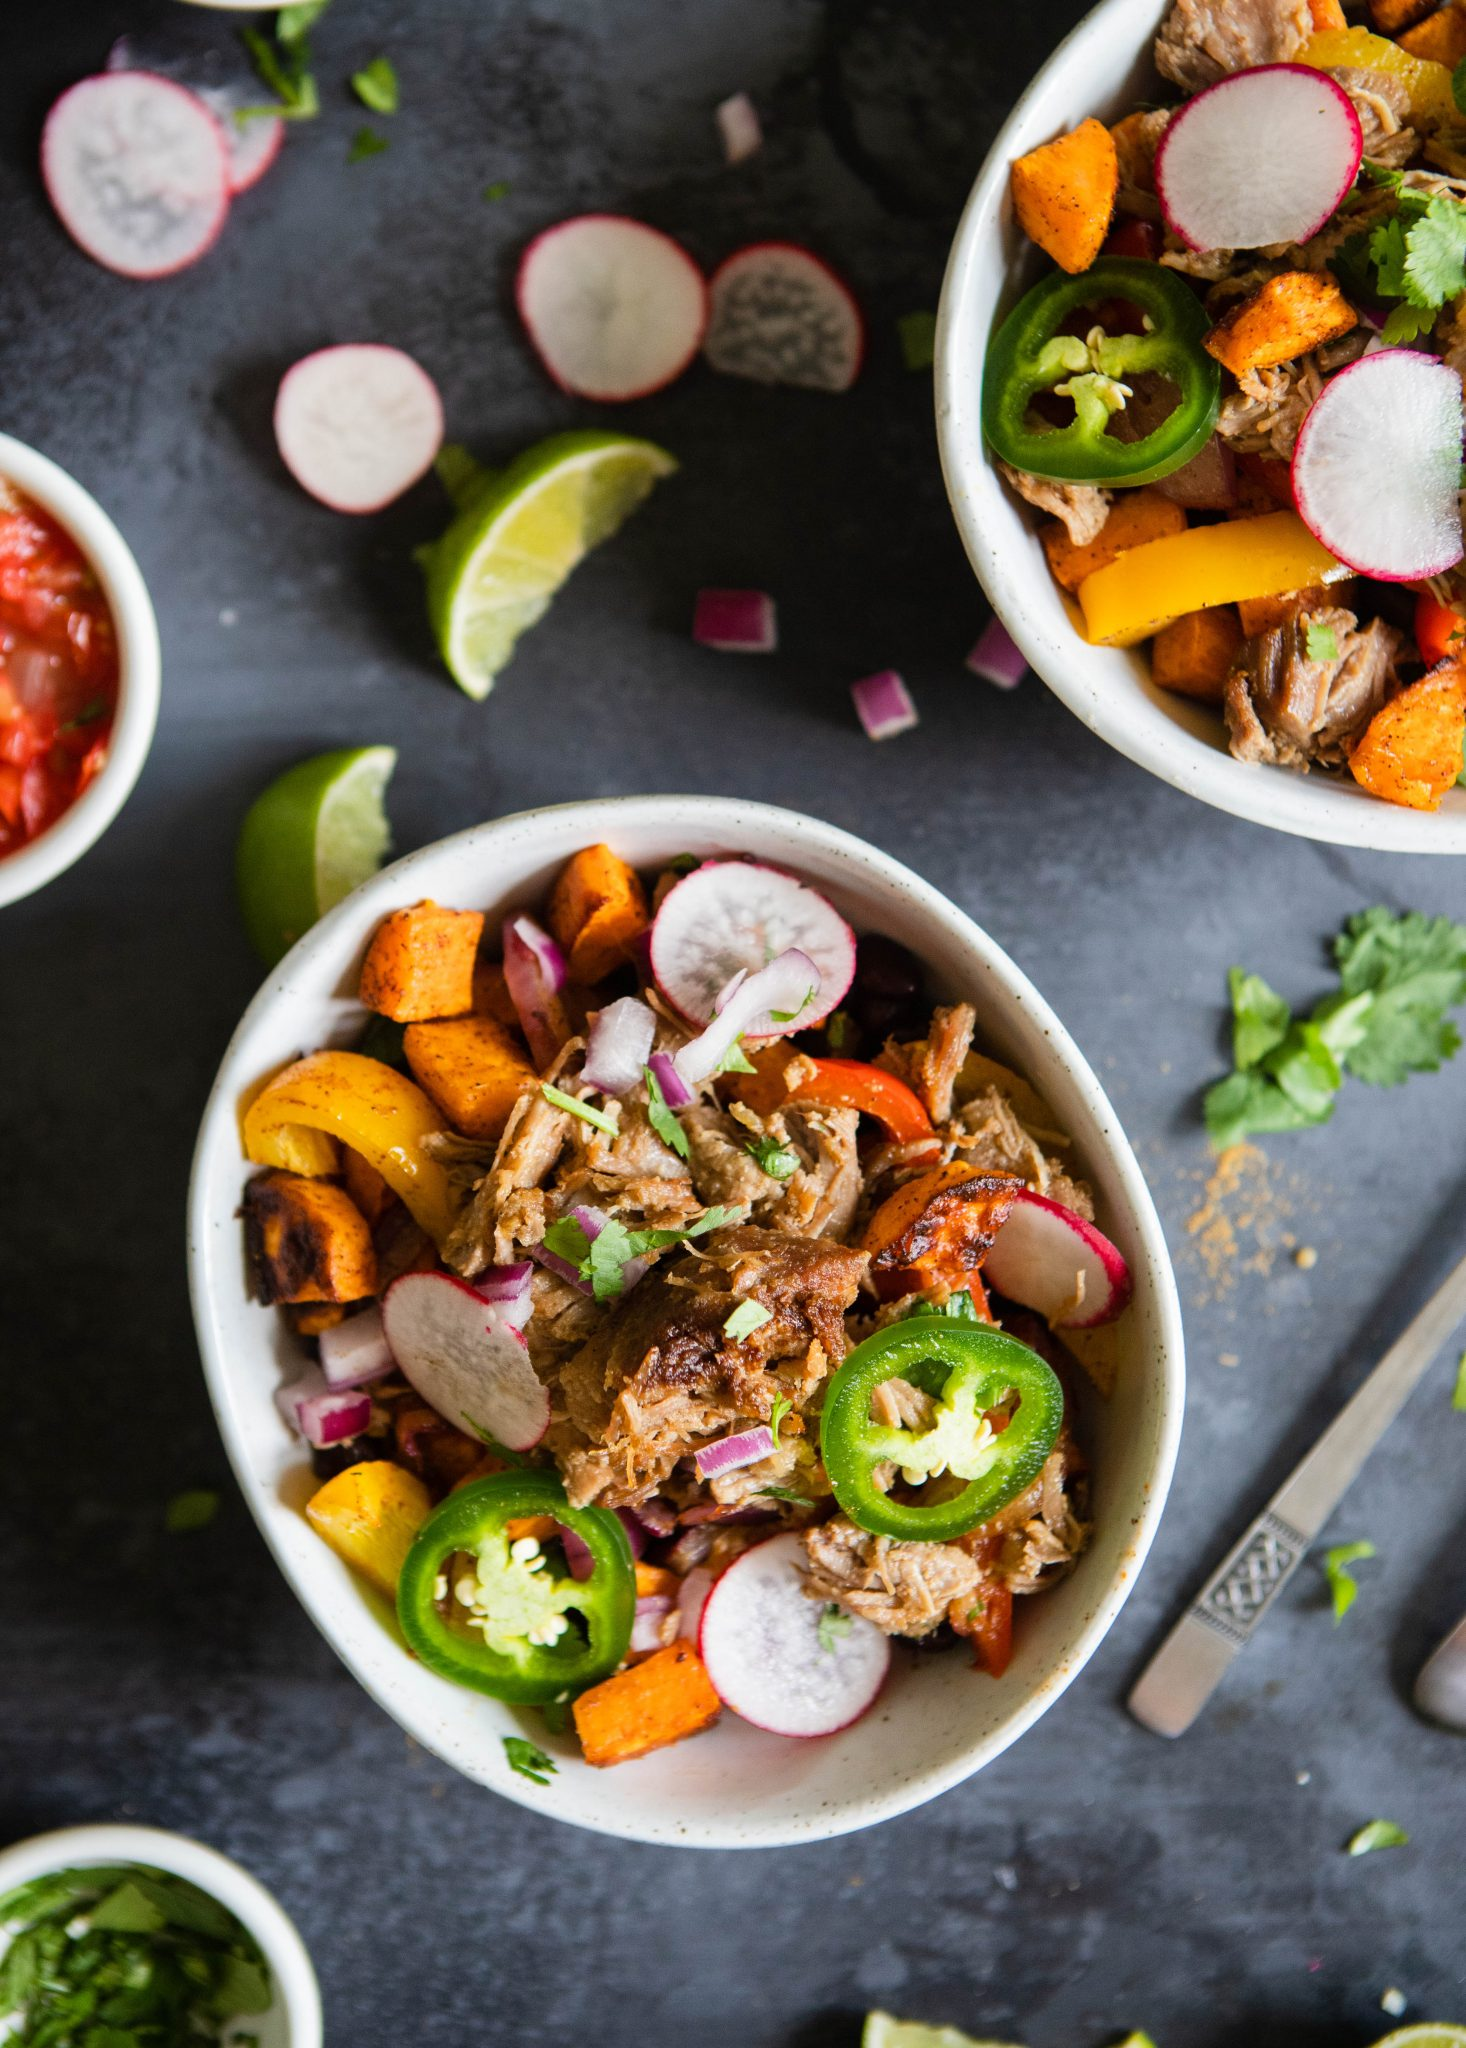 2 bowls filled with carnitas, beans and potatoes and topped with garnishes